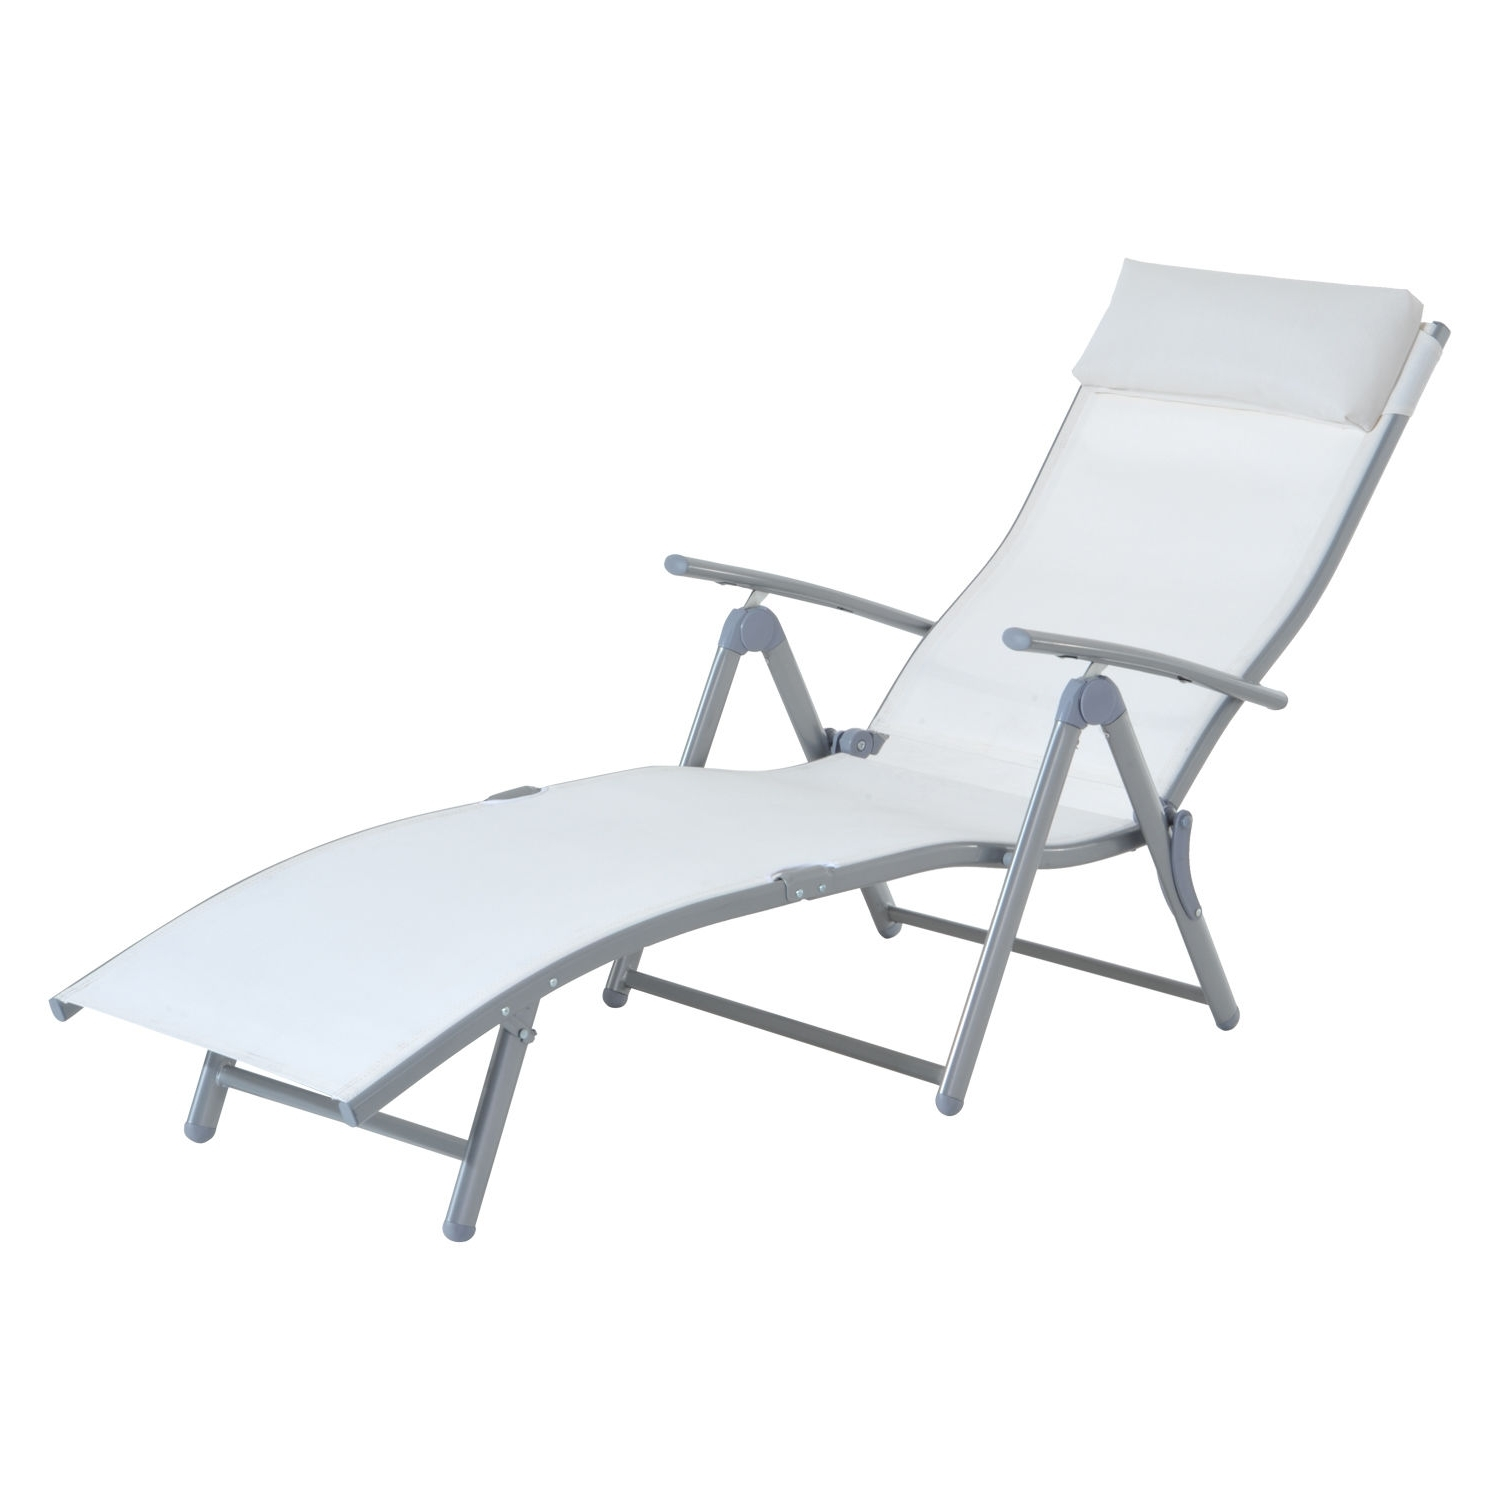 Vinyl Chaise Lounge Chairs throughout Popular Outdoor : Lowes Chaise Lounge Indoor Outdoor Chaise Lounge Chairs